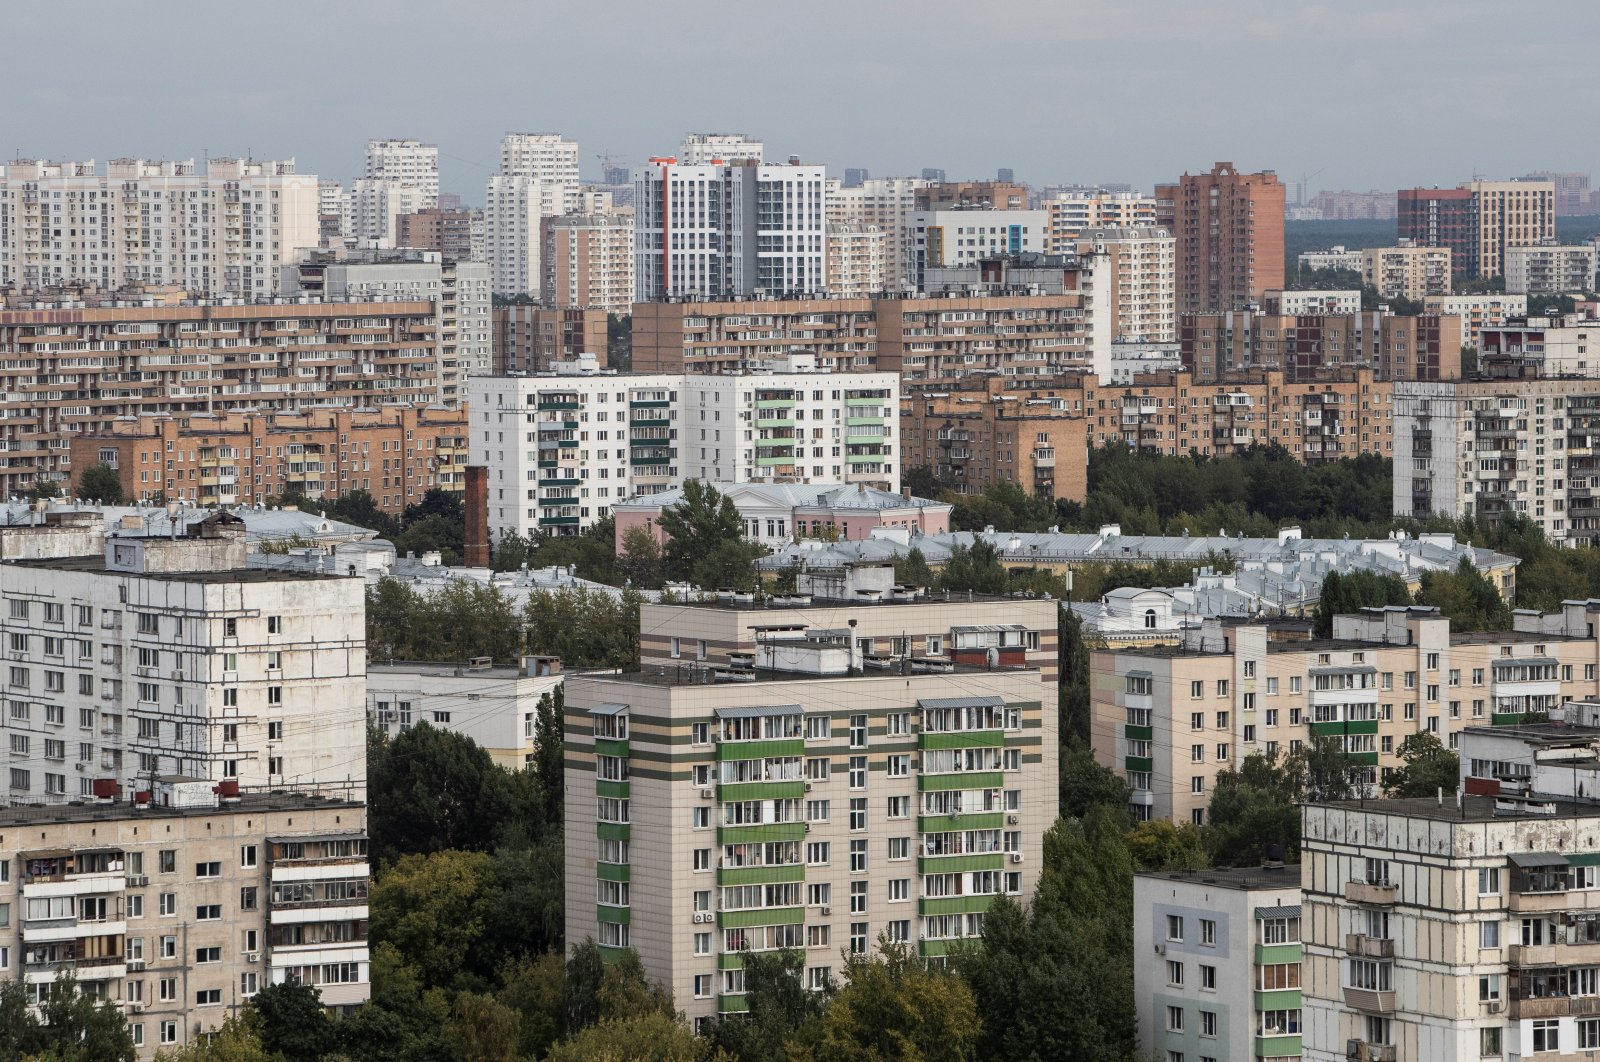 A general view of apartment blocks in Moscow, Russia, Aug. 24, 2020. (Reuters Photo)